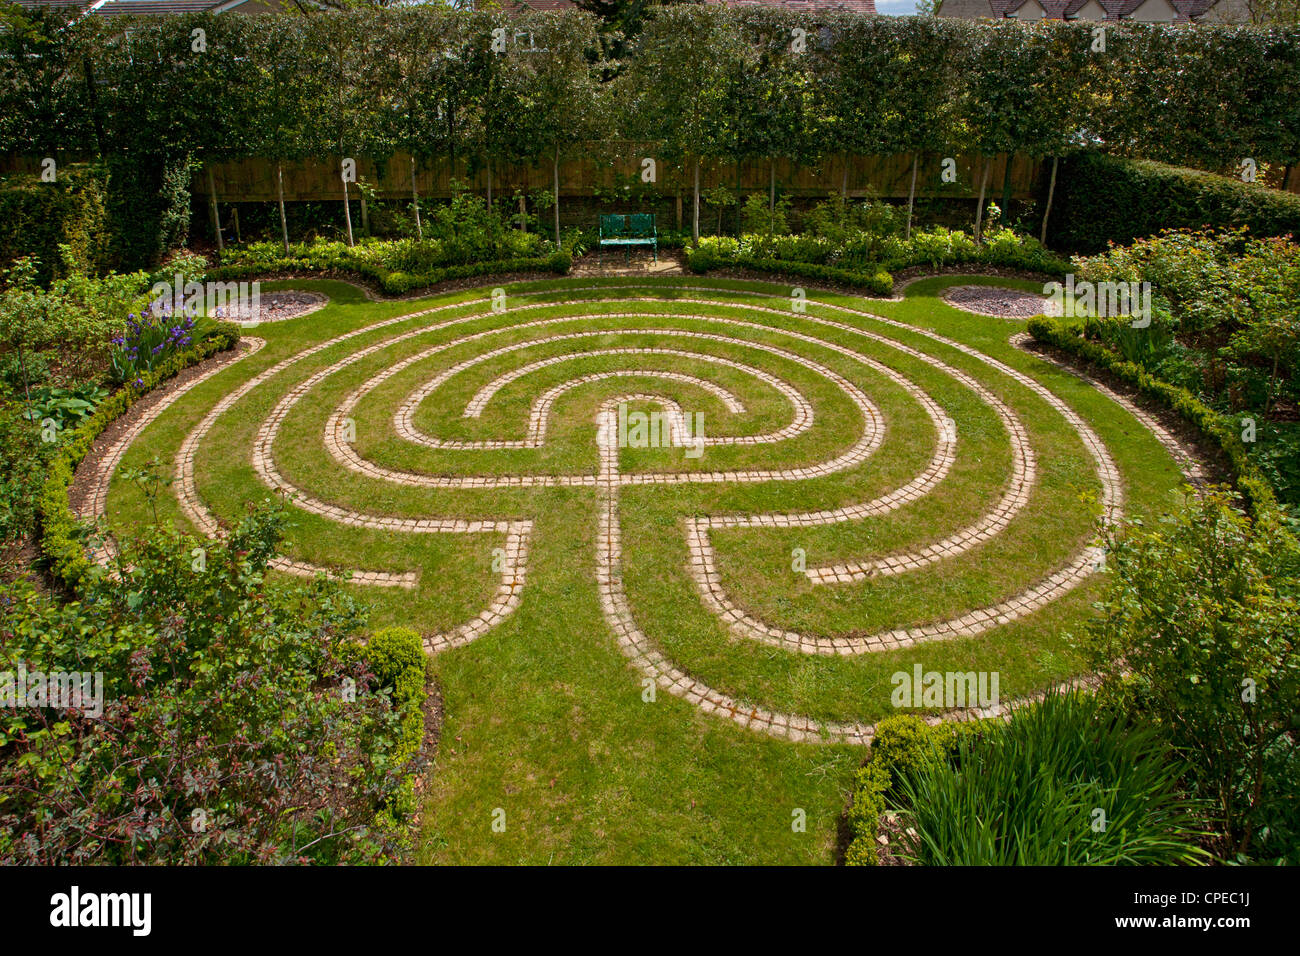 Stone path maze in turf grass lawn at private garden, England - Stock Image